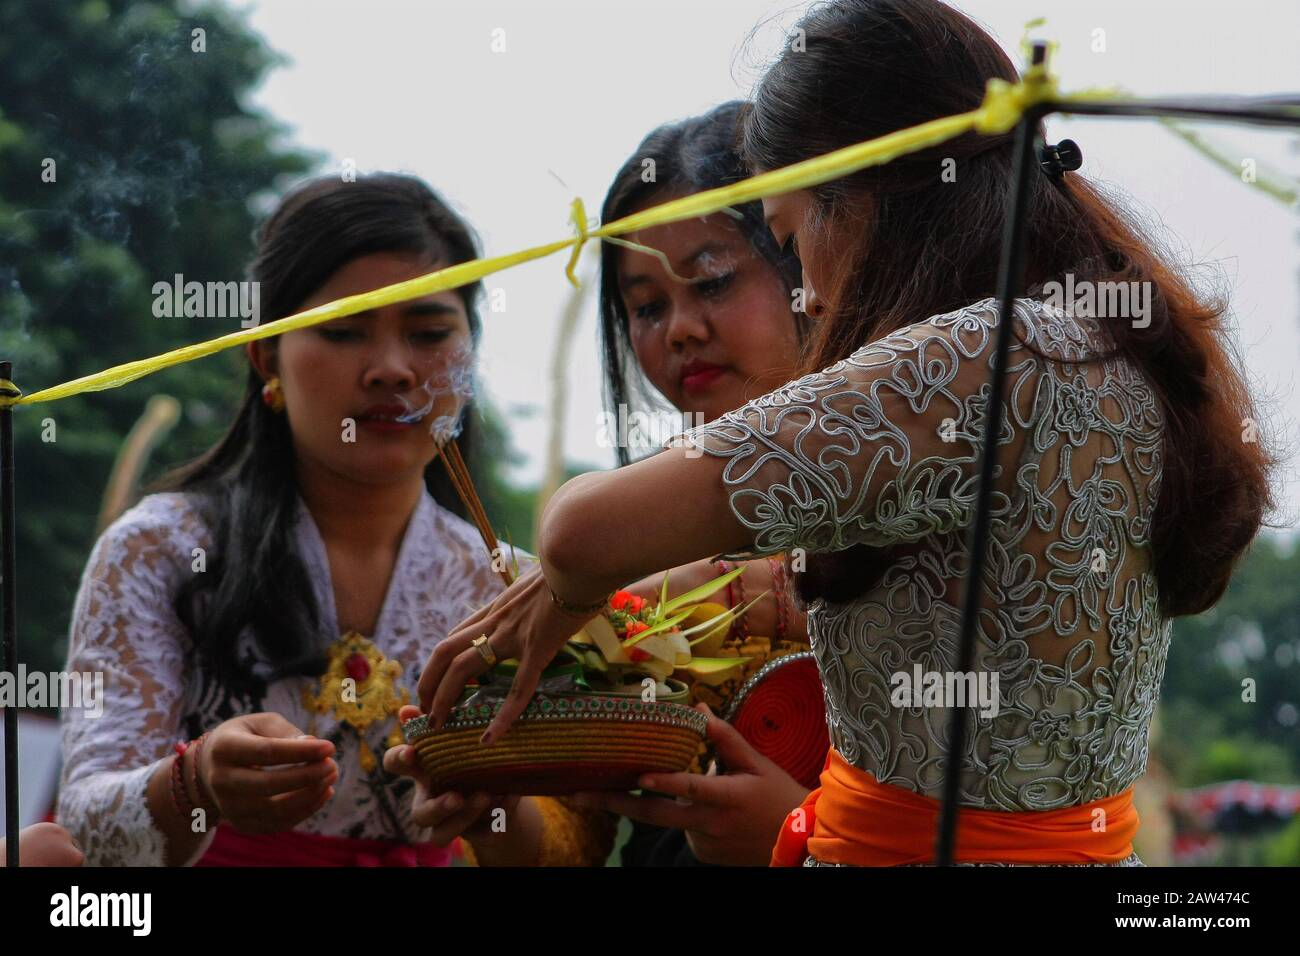 Indonesian Hindus Girls Holding The Offerings During A Big